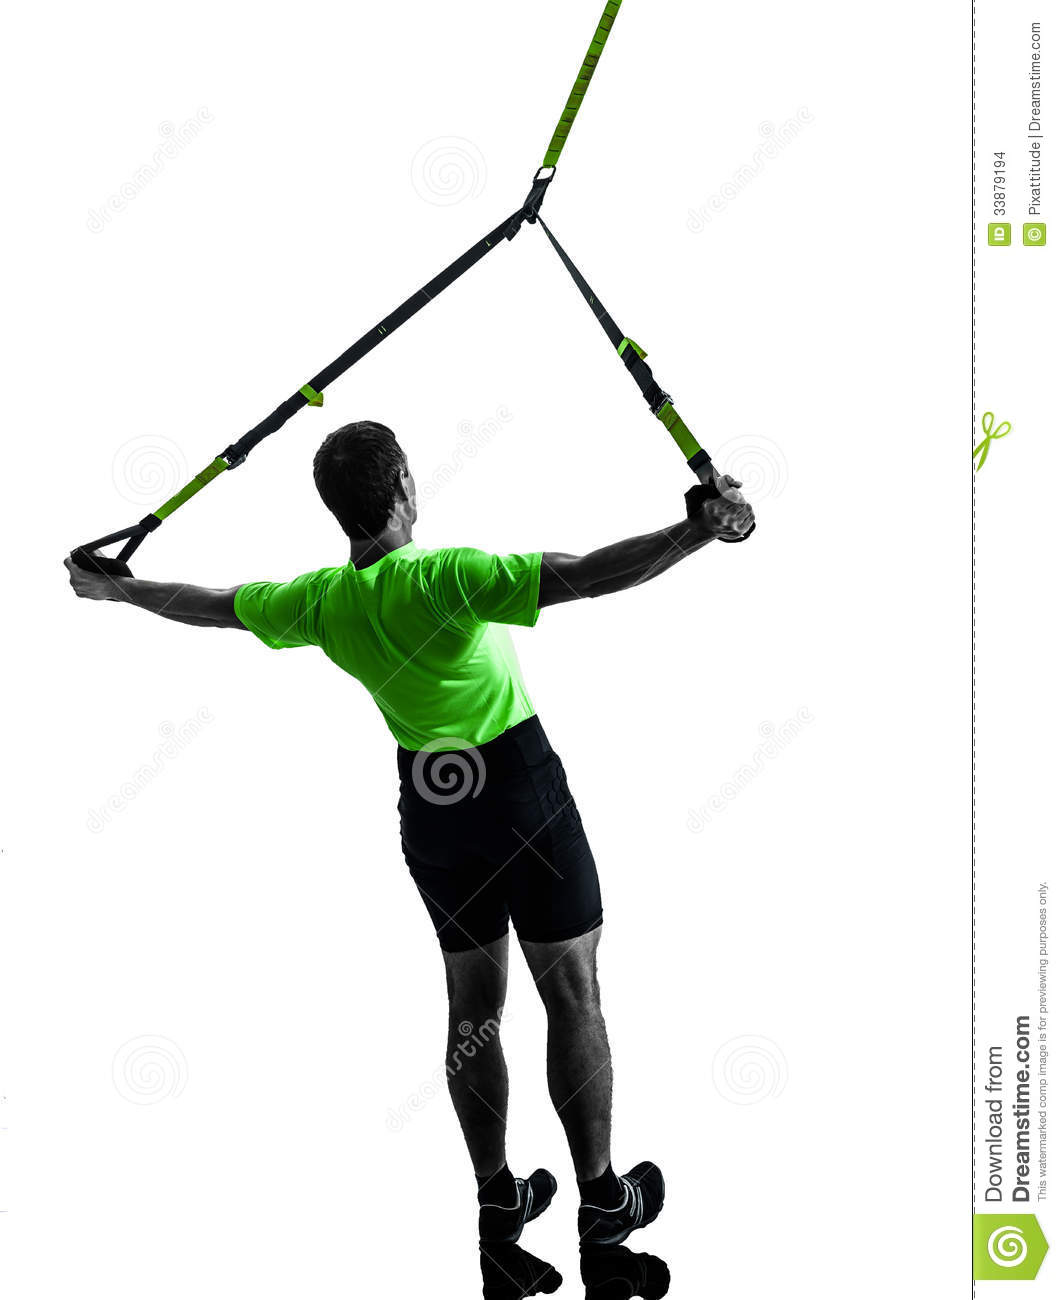 Man Exercising Suspension Training Trx Silhouette Stock Images.